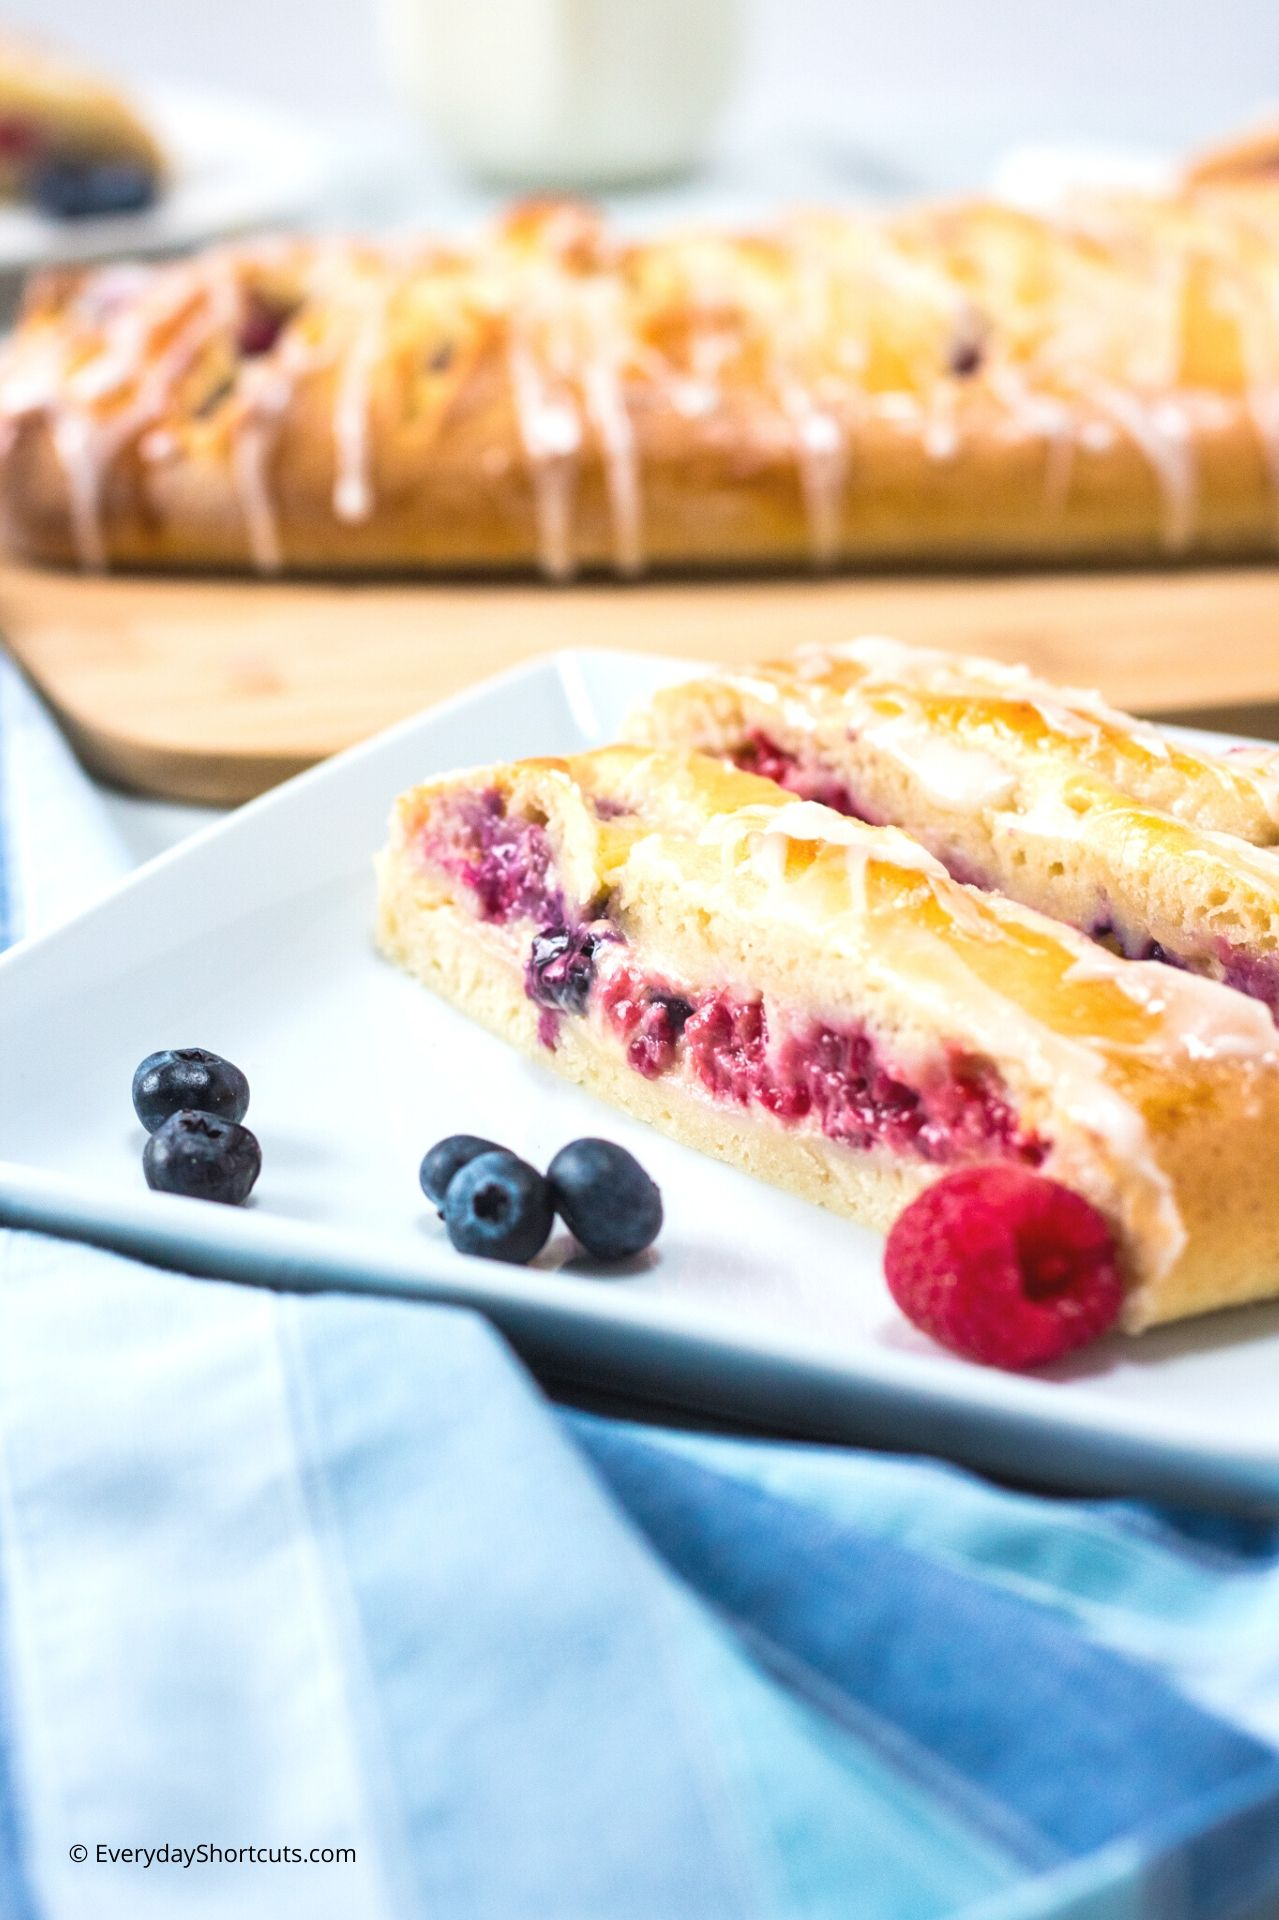 How to Make Fresh Berry Danish with Lemon Glaze